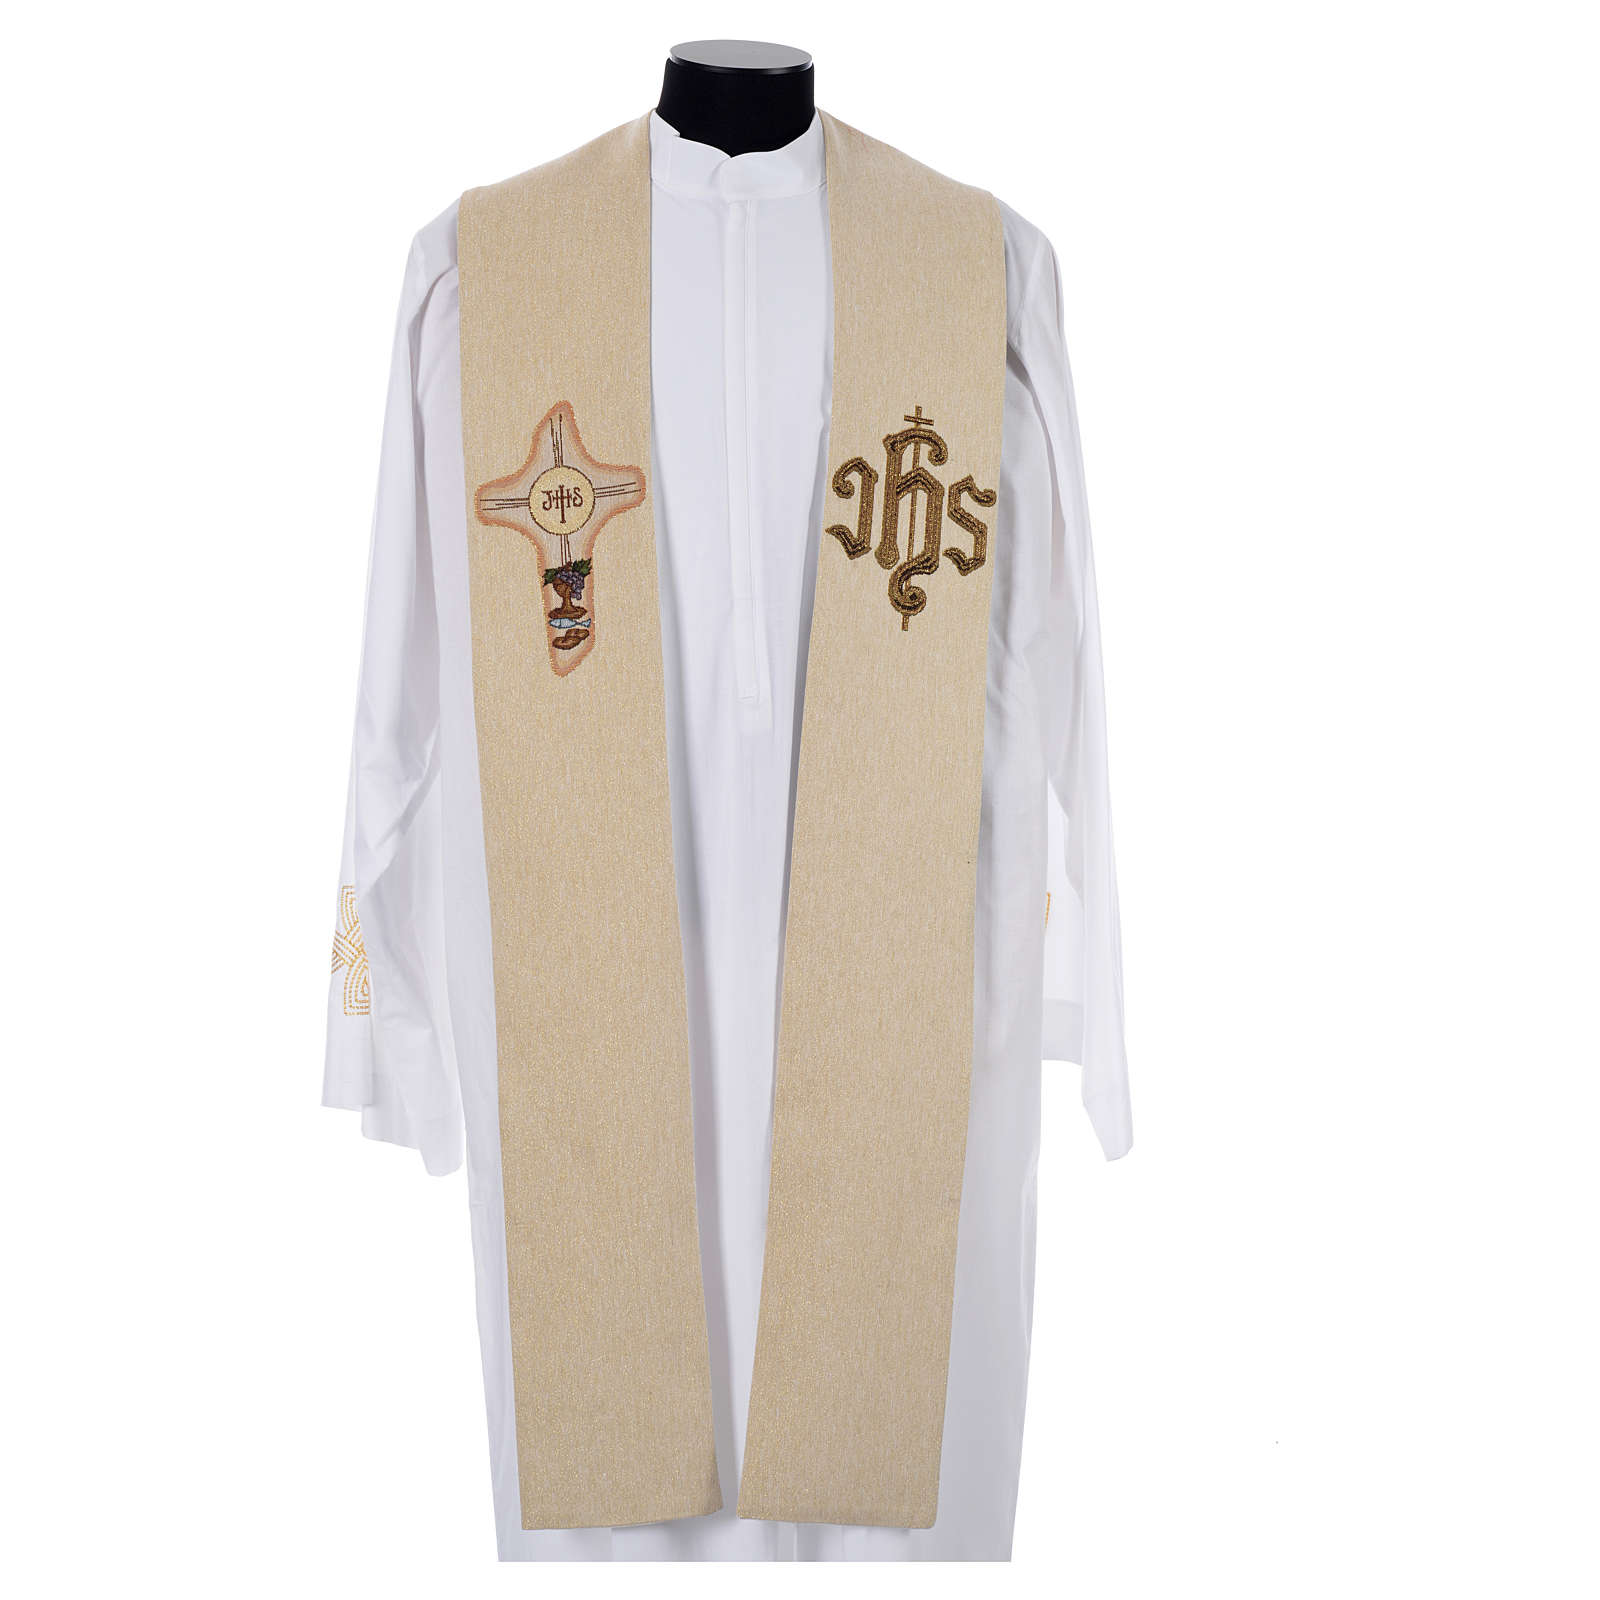 Stole with cross and IHS in polyester, cotton and lurex 4